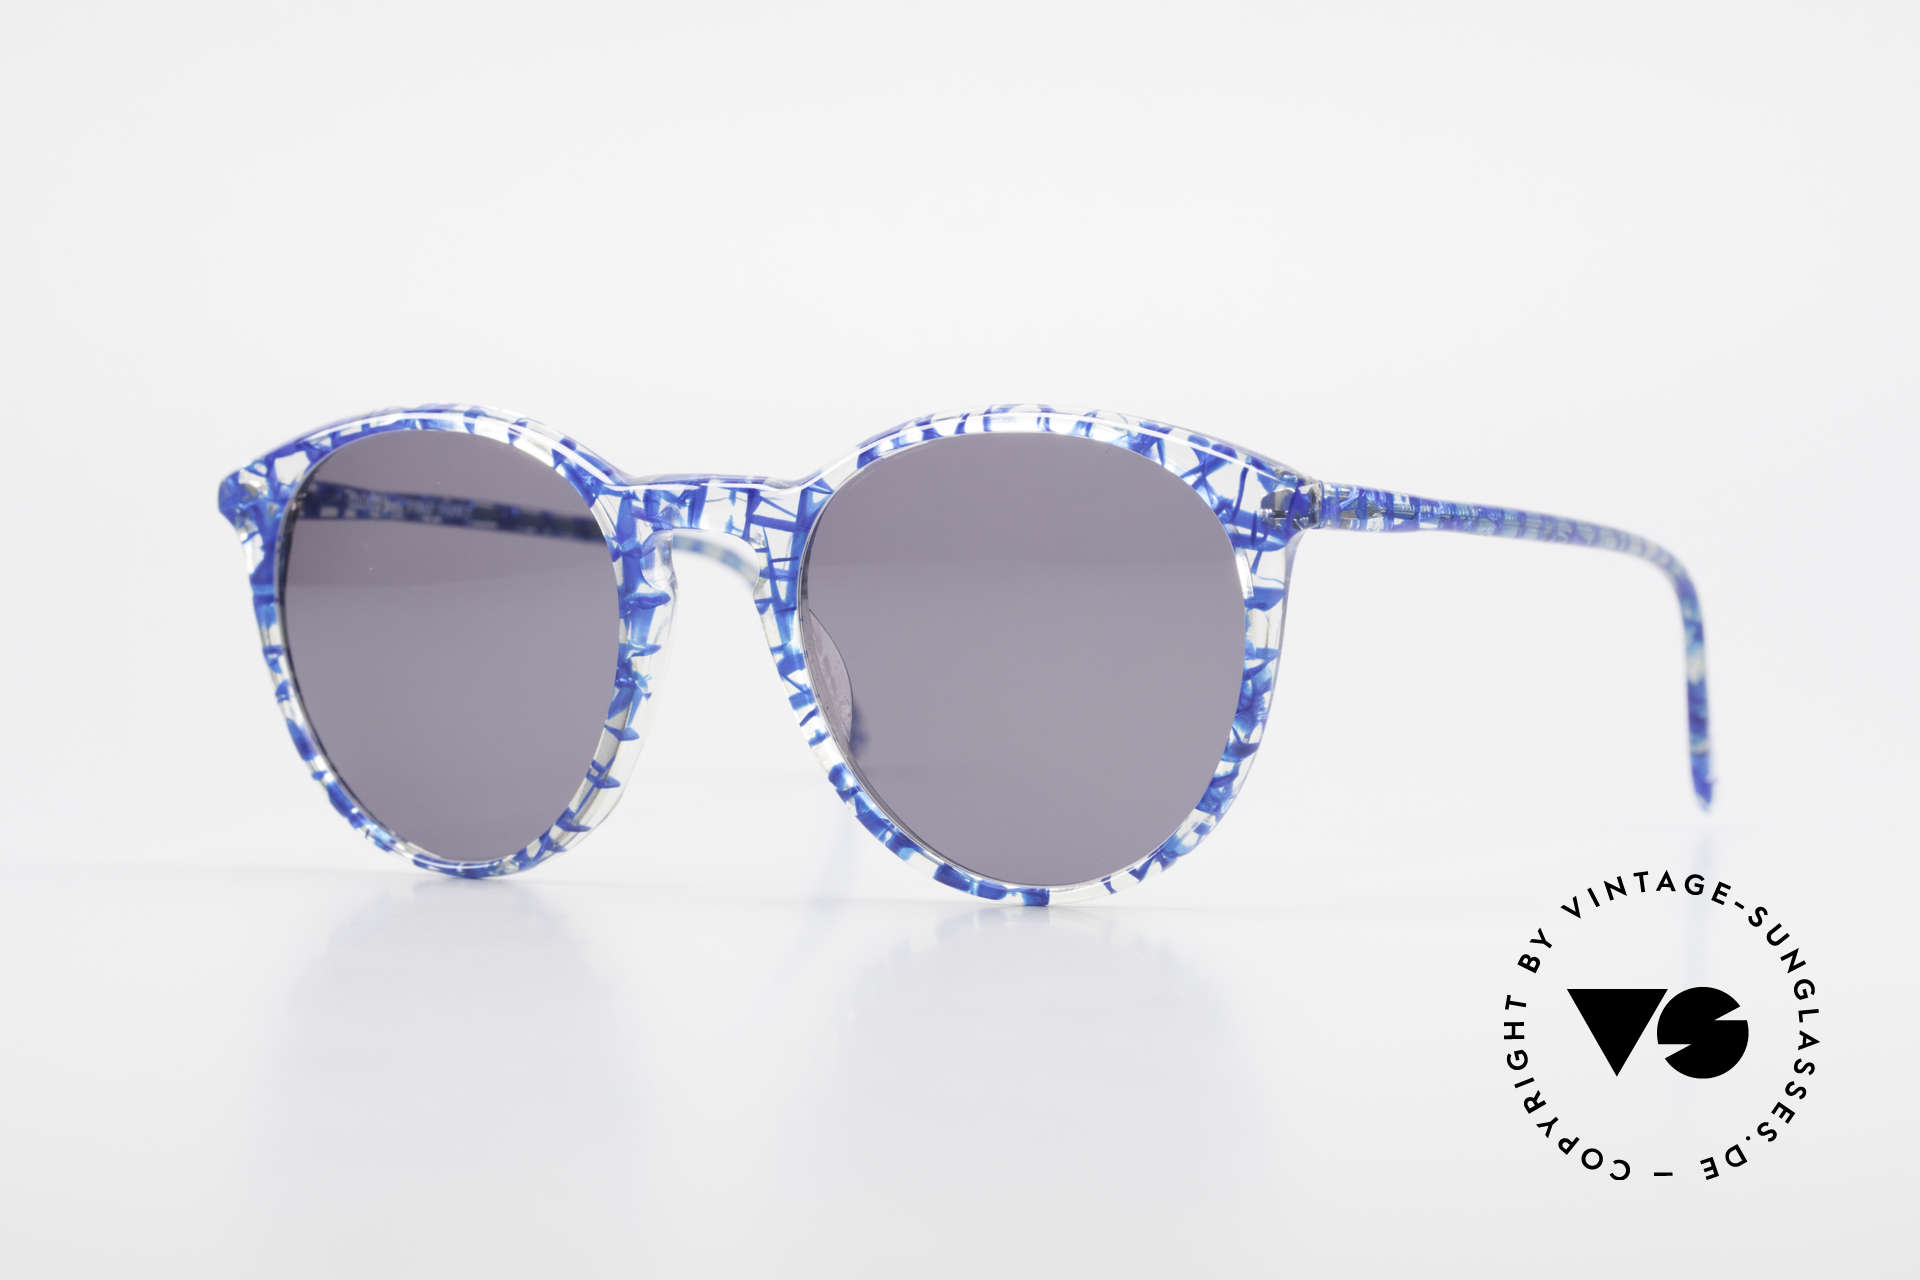 Alain Mikli 901 / 323 Panto Sunglasses Crystal Blue, elegant VINTAGE Alain Mikli designer sunglasses, Made for Men and Women